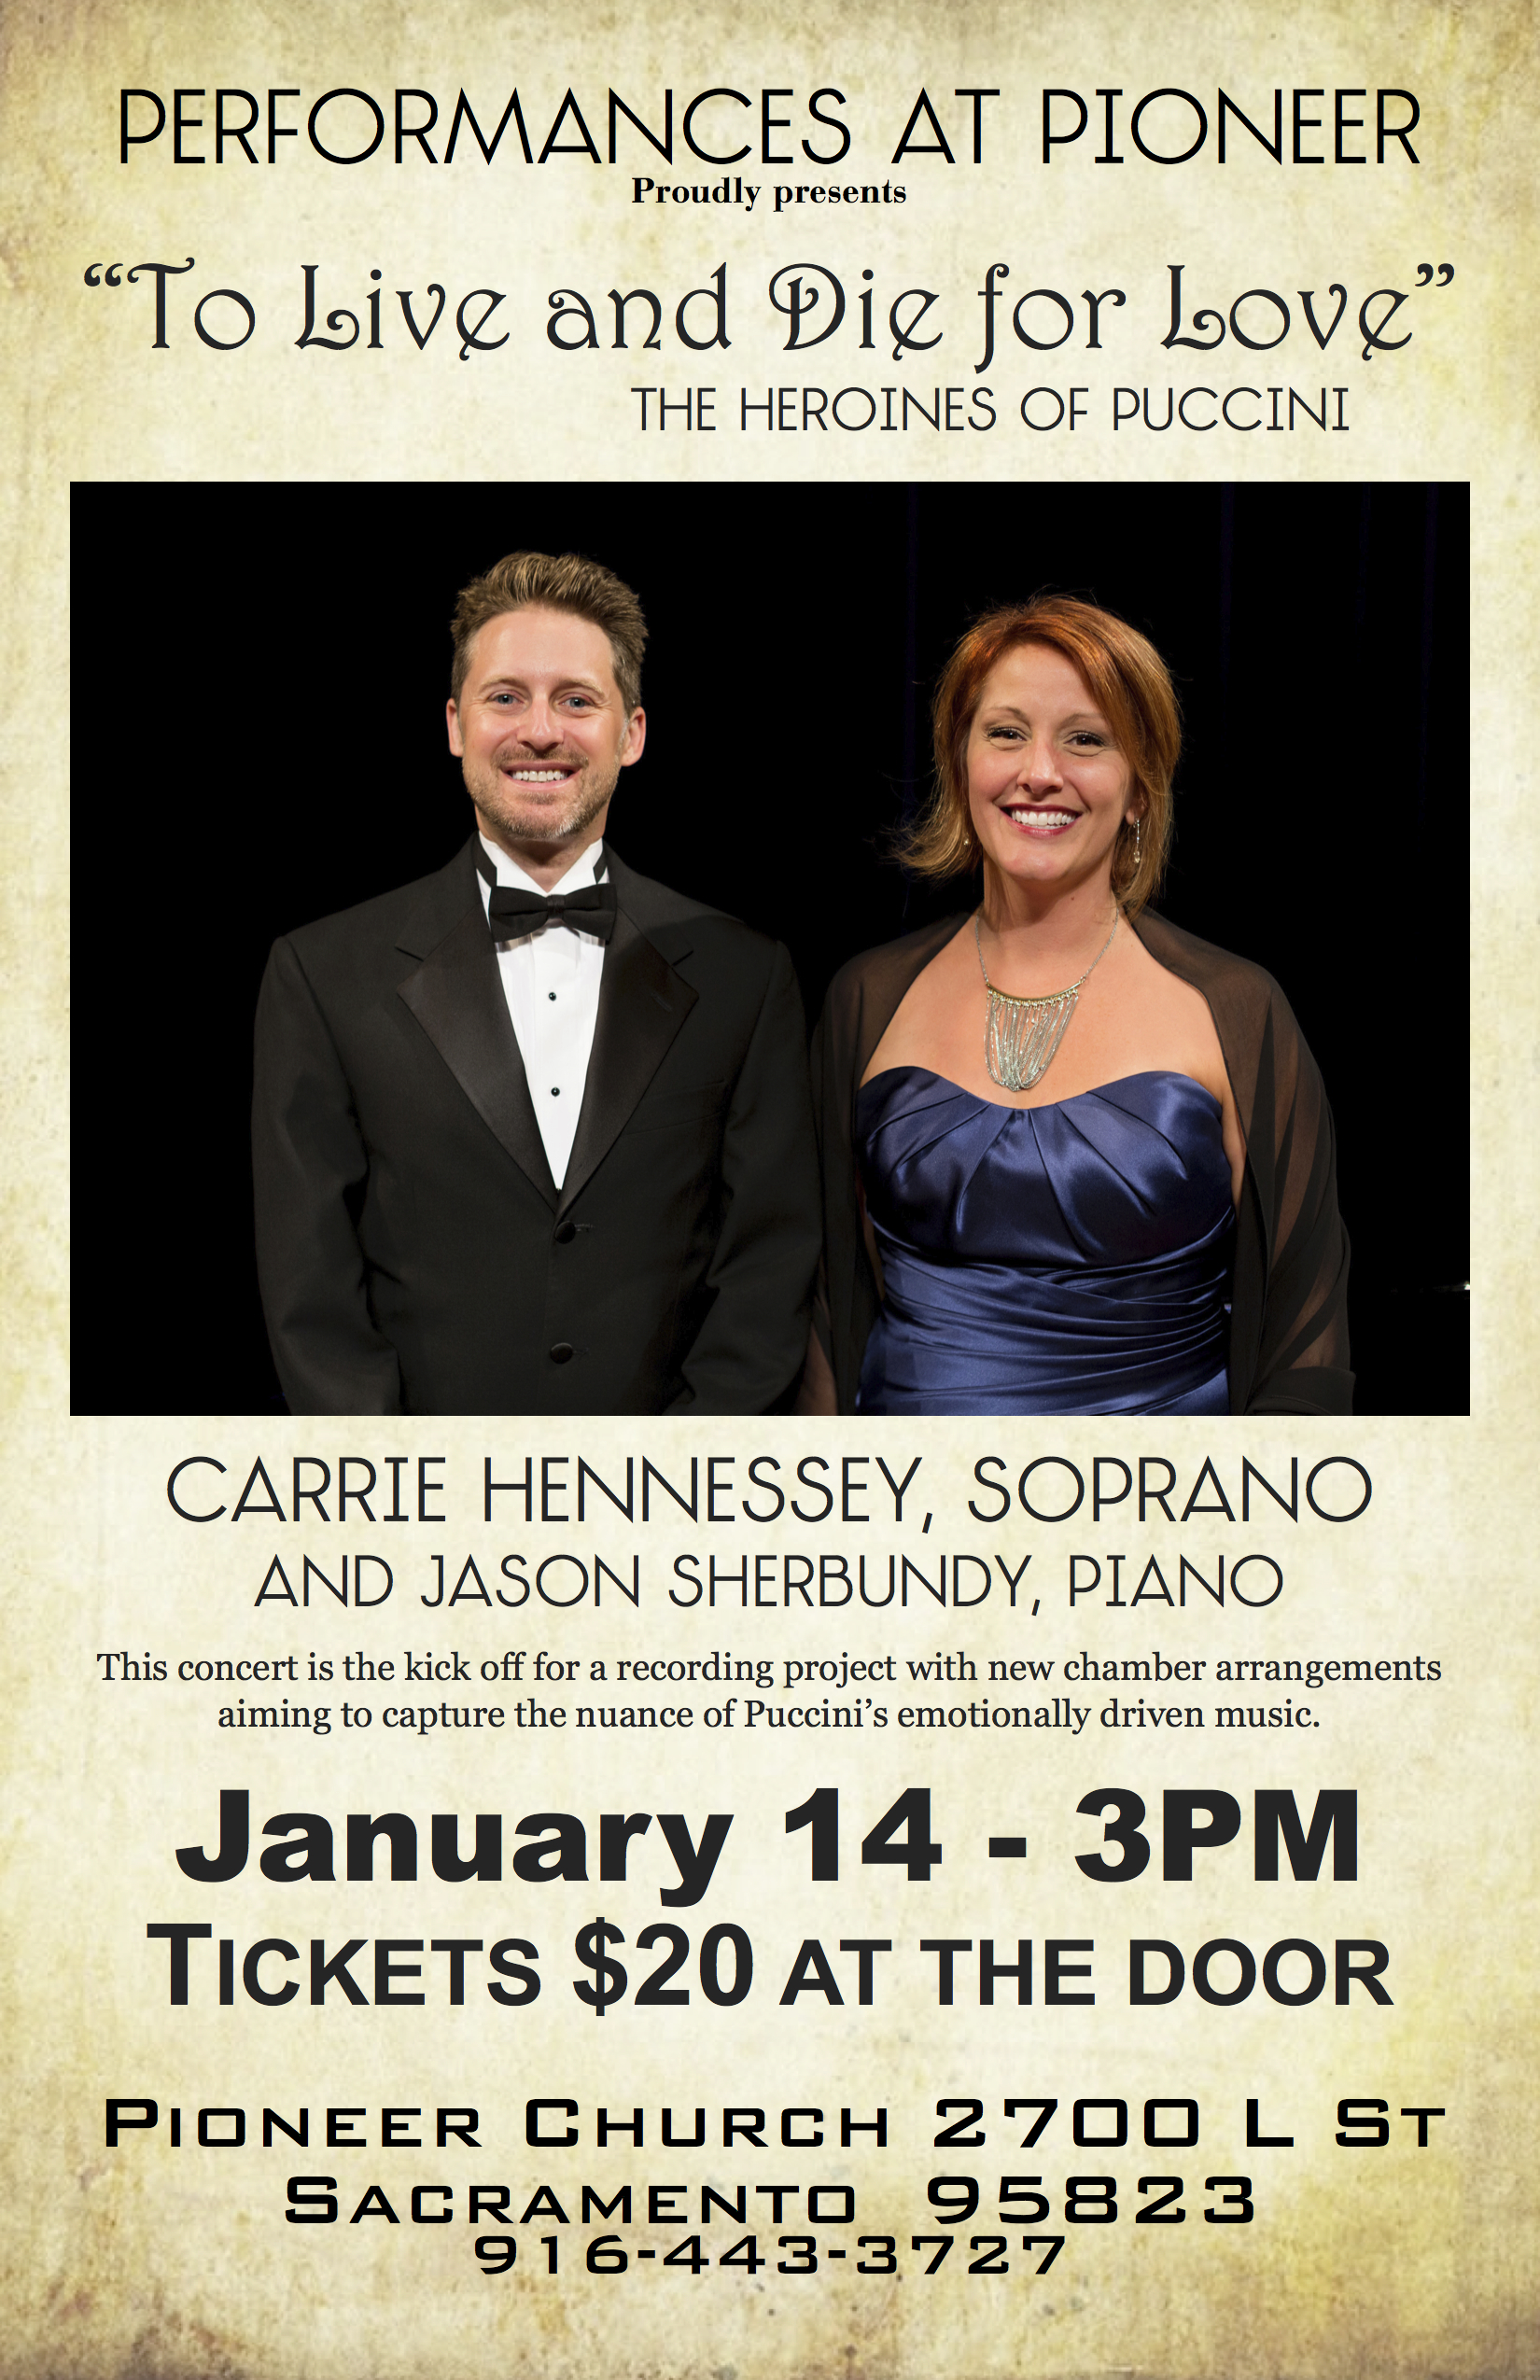 Puccini recital with Carrie Hennessey in Sacramento!